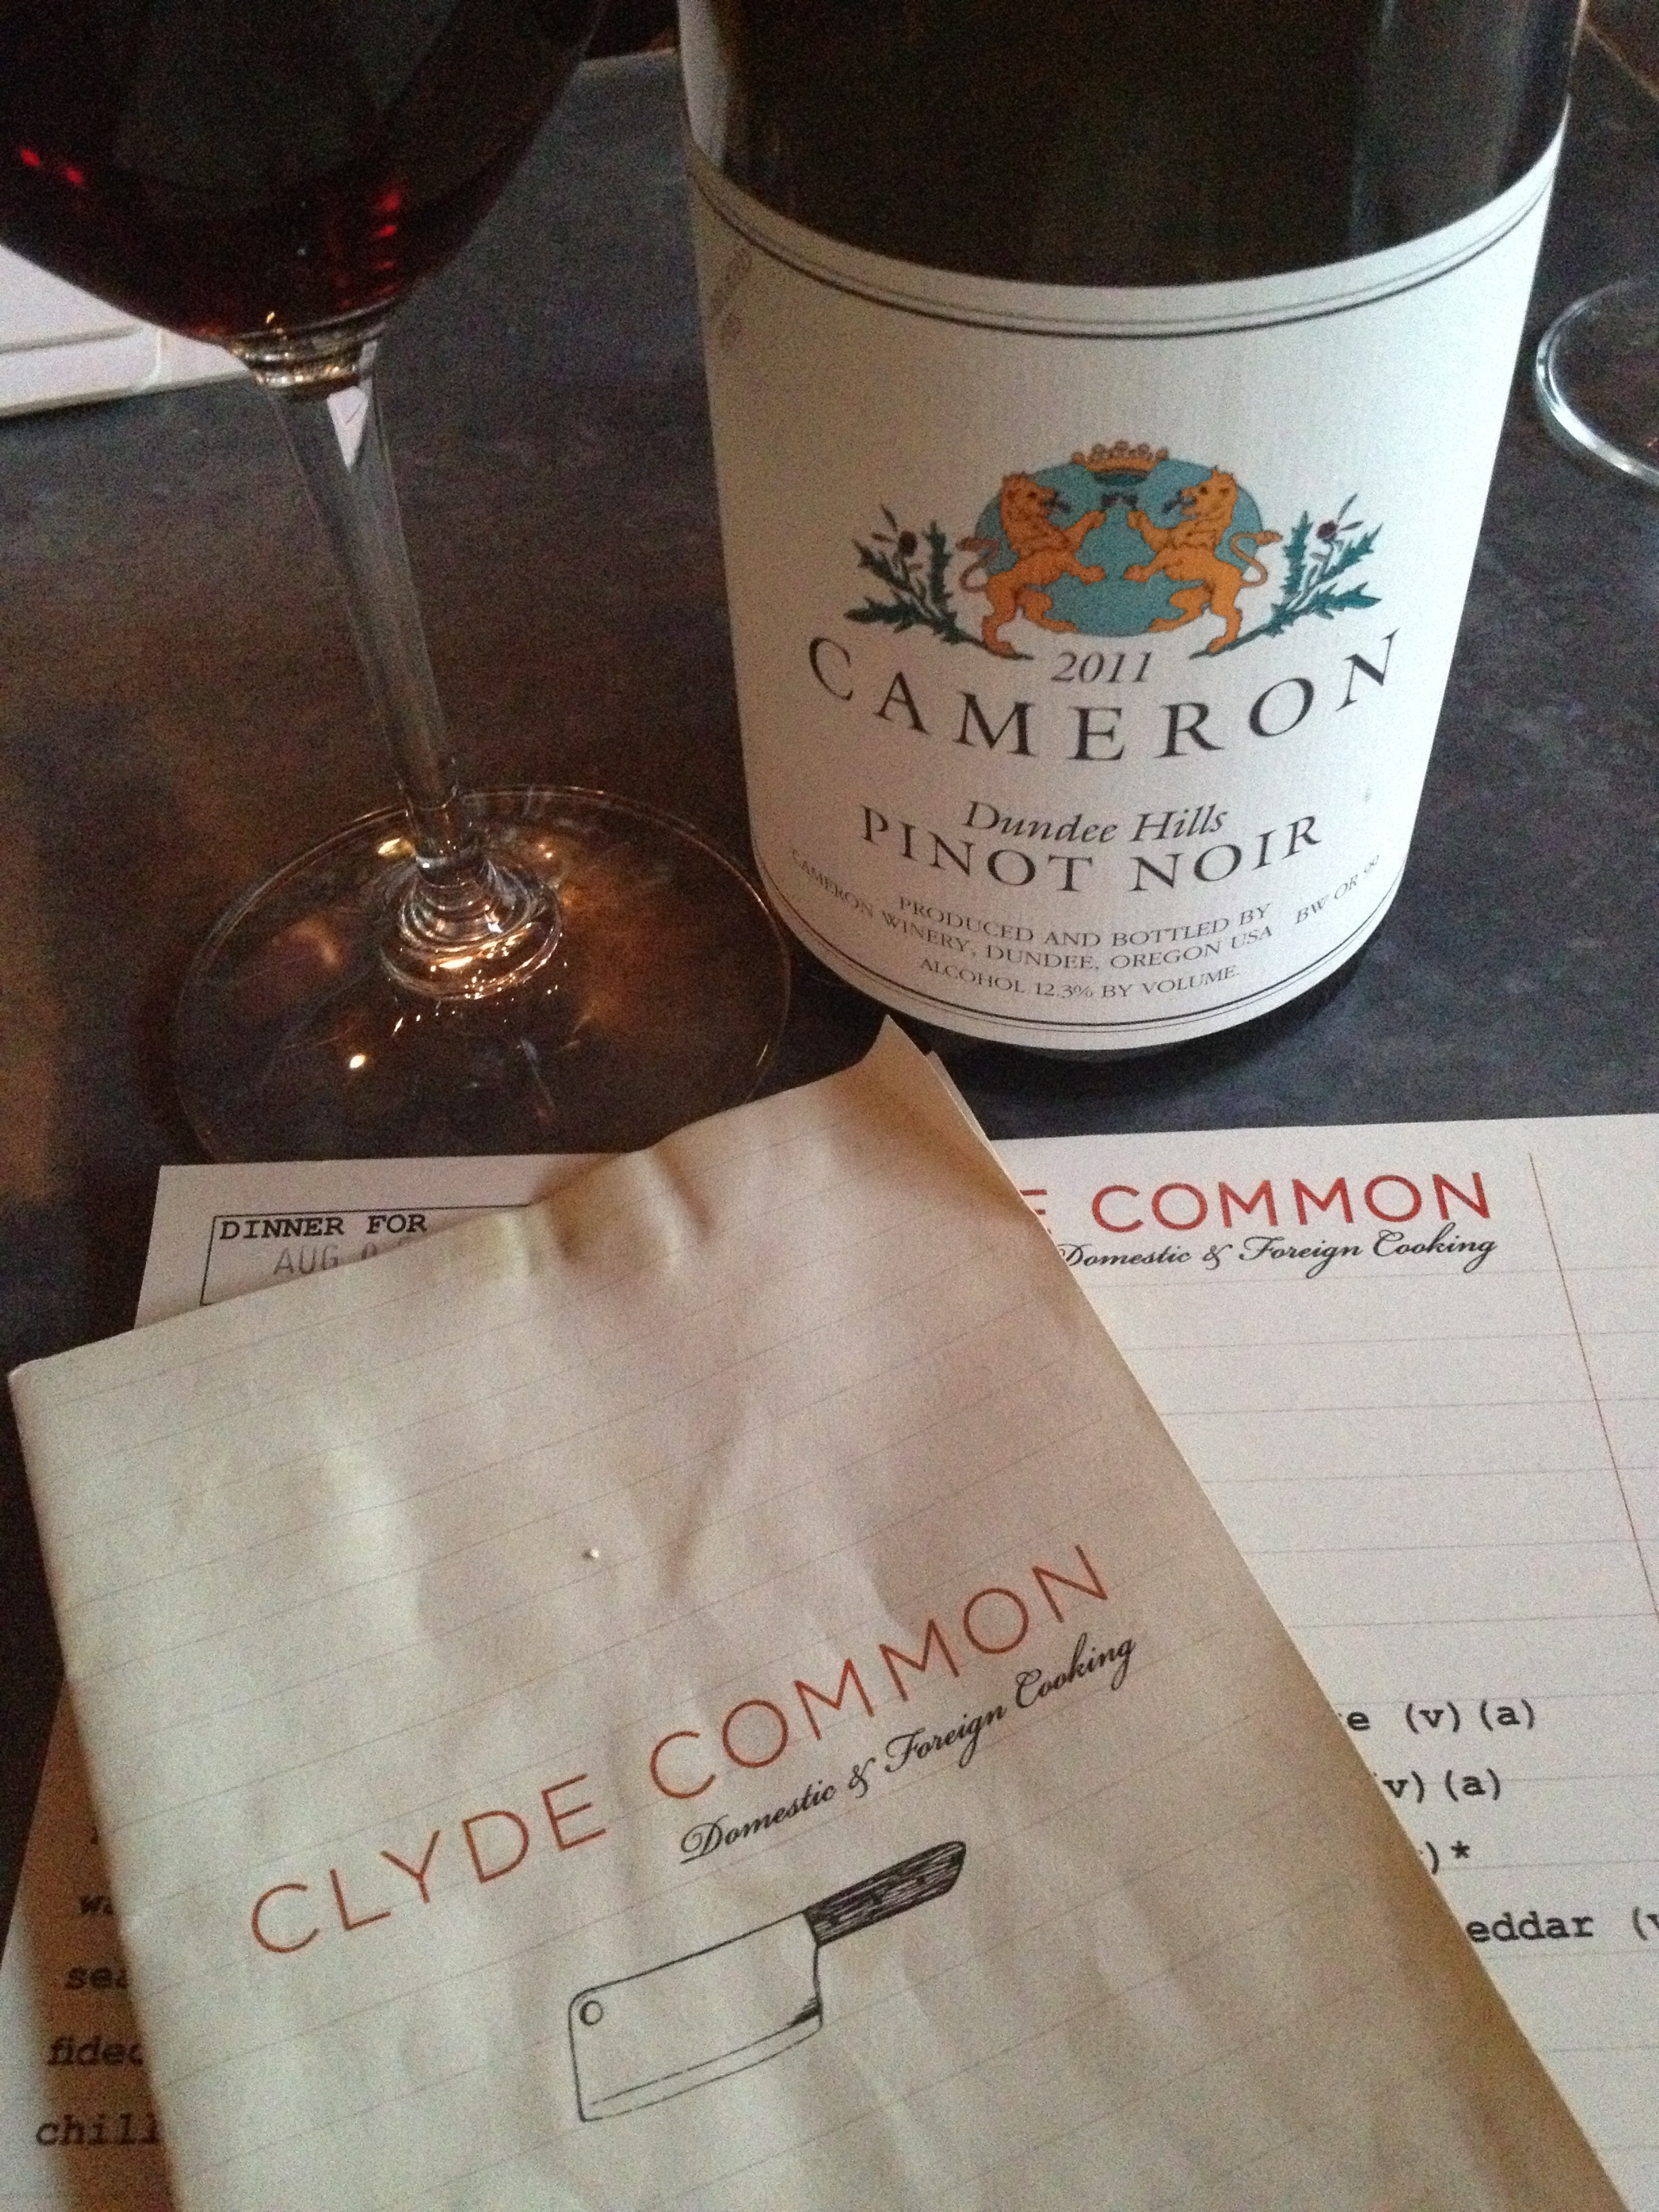 Finally found someone pouring the elusive Cameron Dundee Hills Pinot Noir. Kudos to Clyde Common in the Ace Hotel!